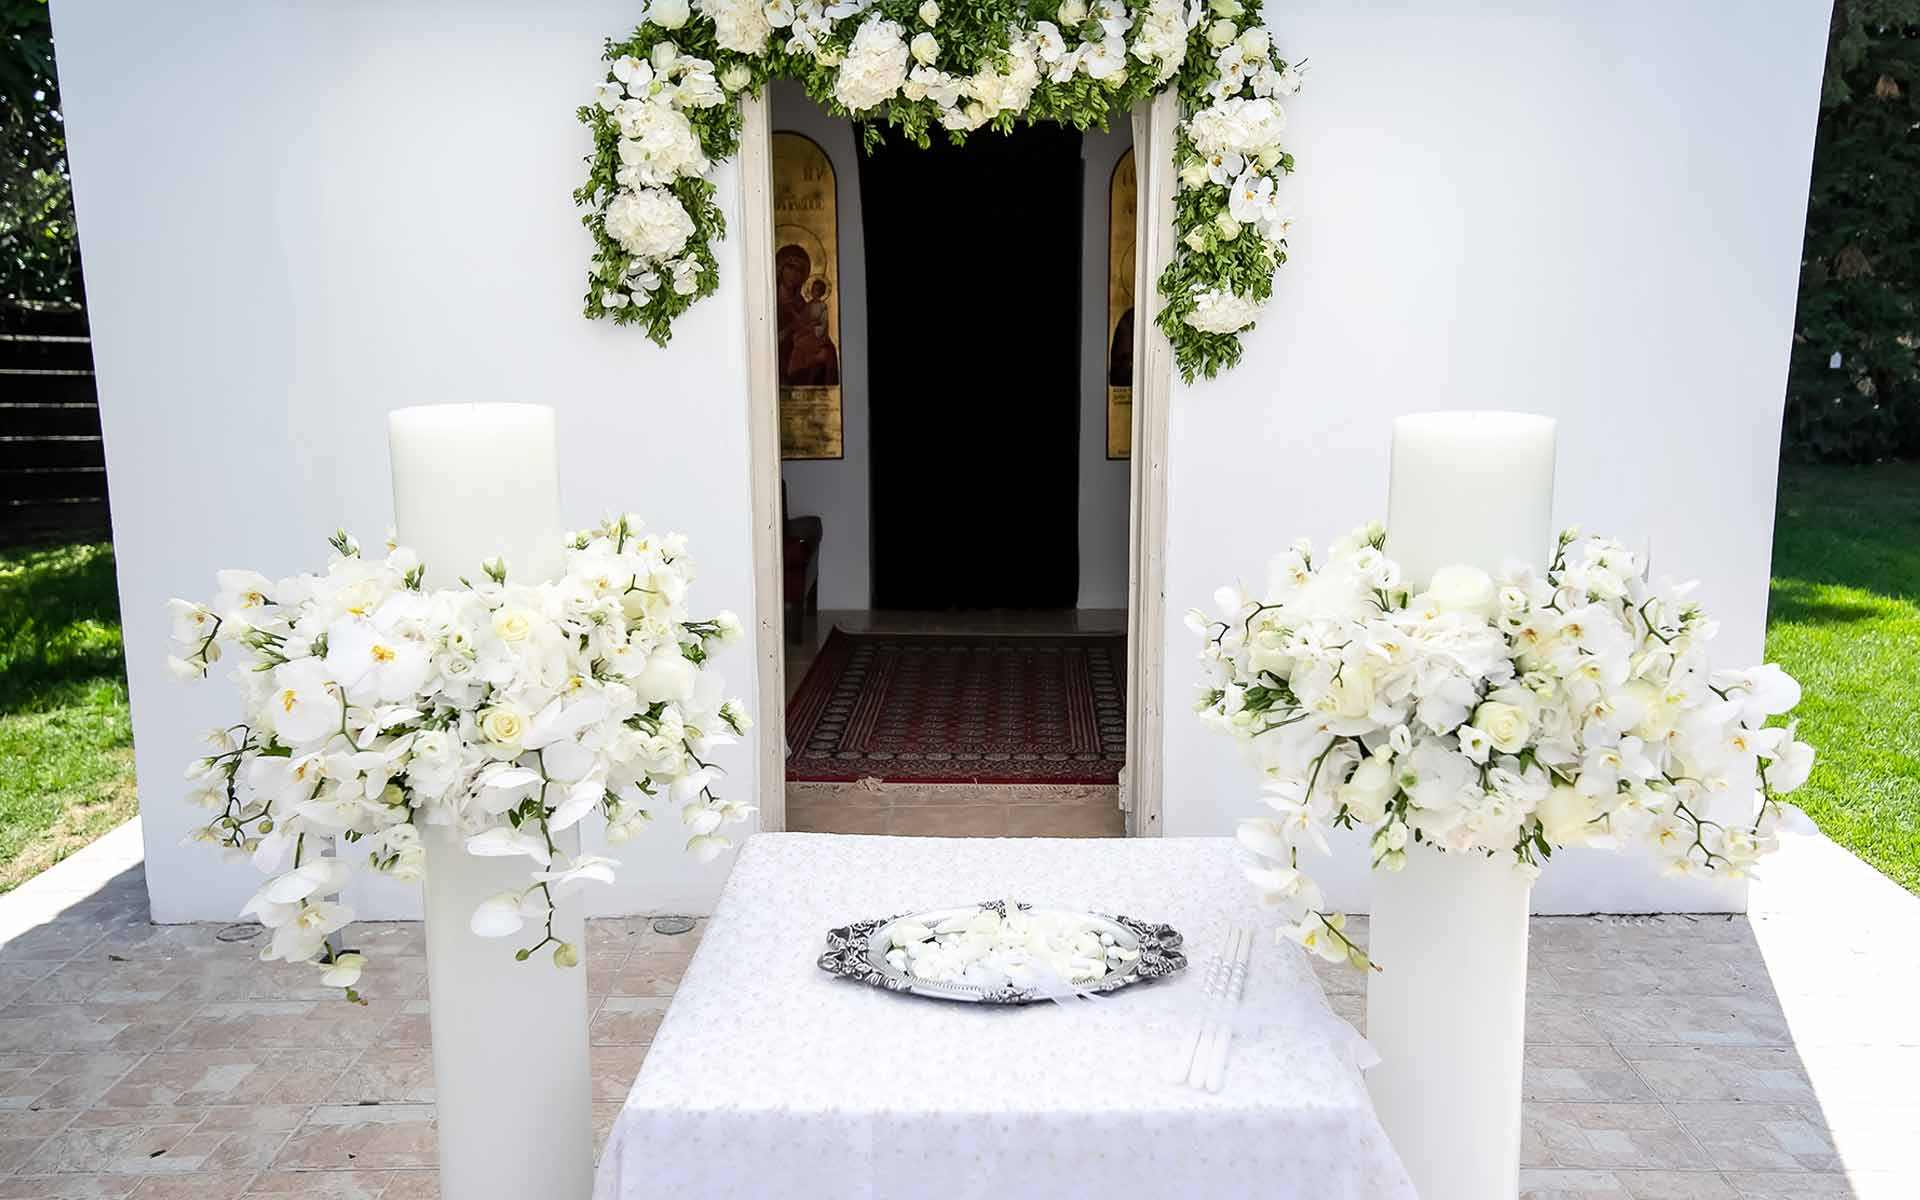 Unity-candle-set-with-Orchids-hydrangeas-and-roses-all-in-white-for-an-Orthodox-ceremony